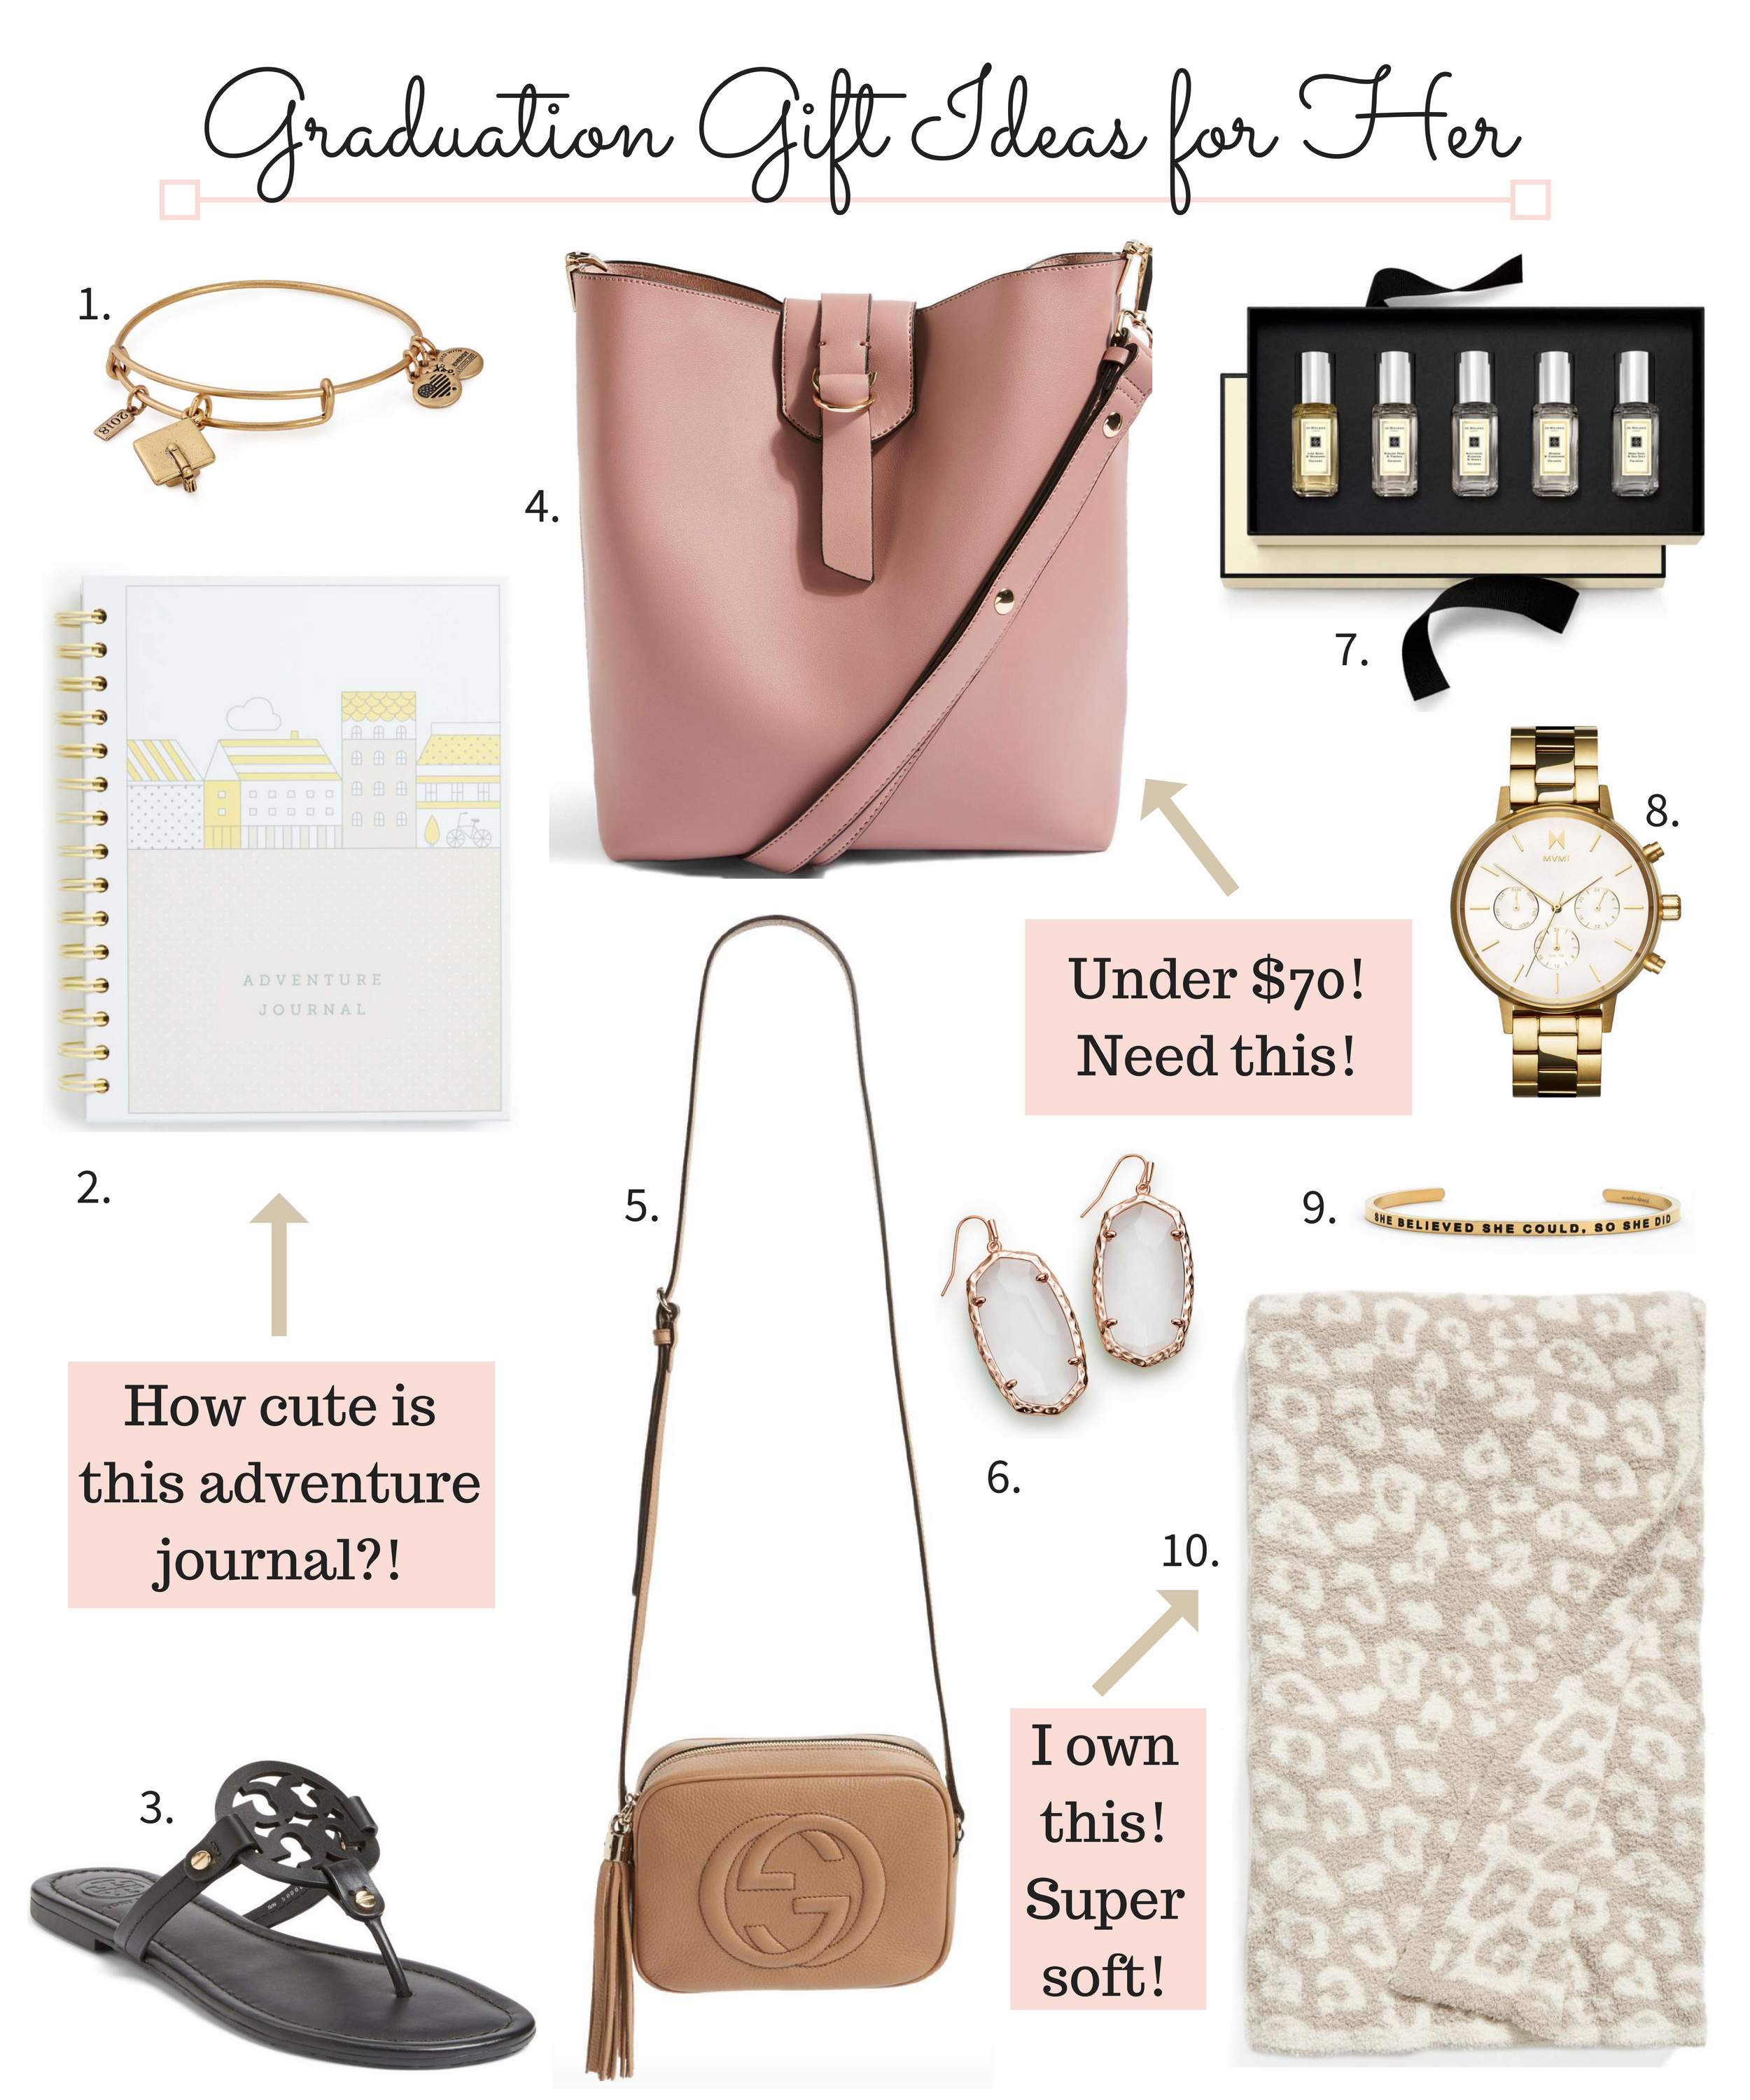 Graduation Gifts for Her 2018